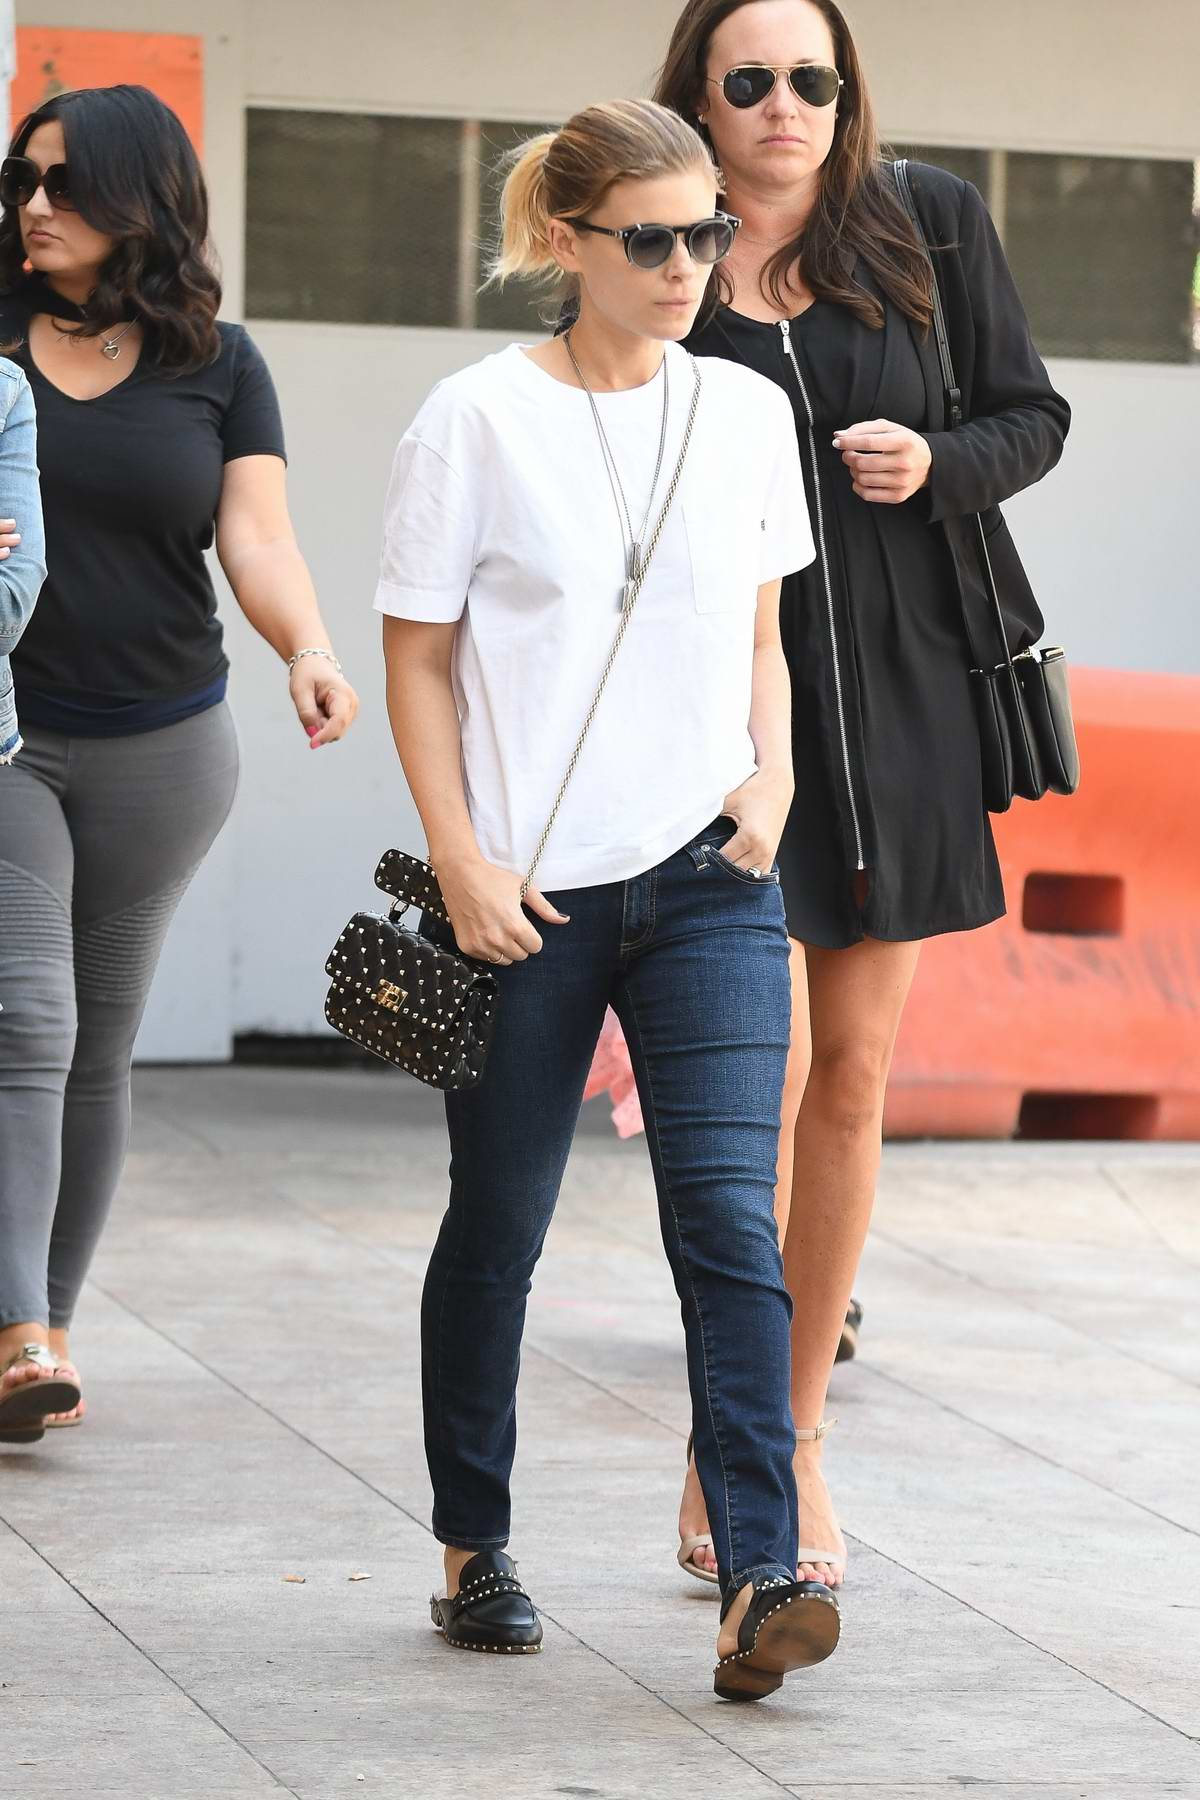 Kate Mara is spotted out for lunch with Friends at Cafe Gratitude in Beverly Hills, Los Angeles